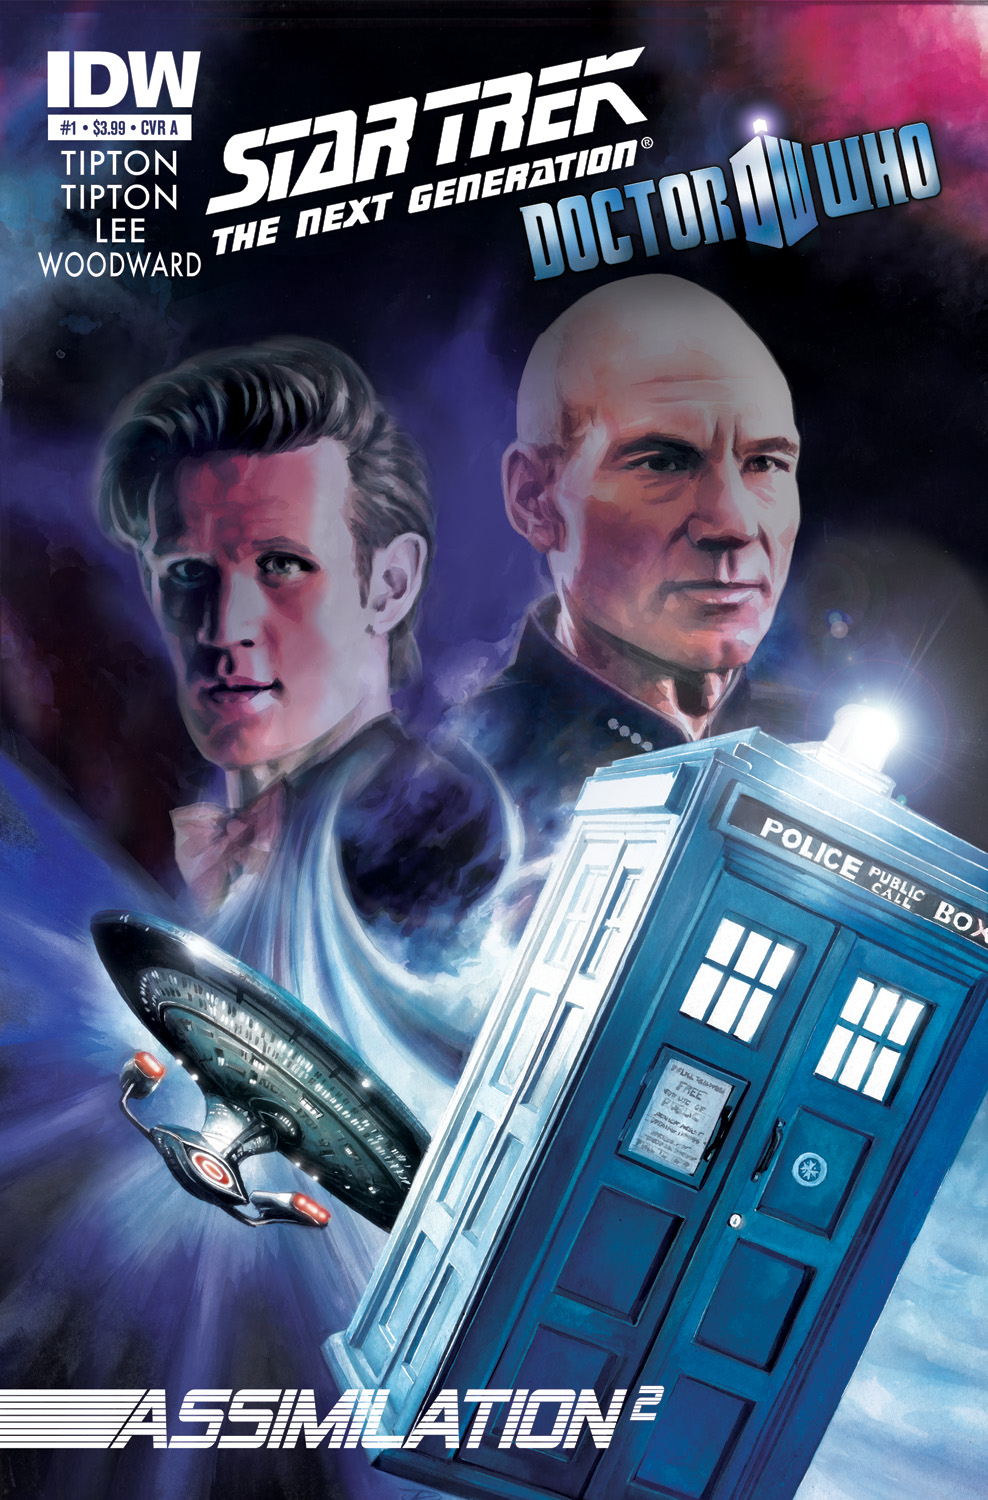 Doctor Who/Star Trek #1